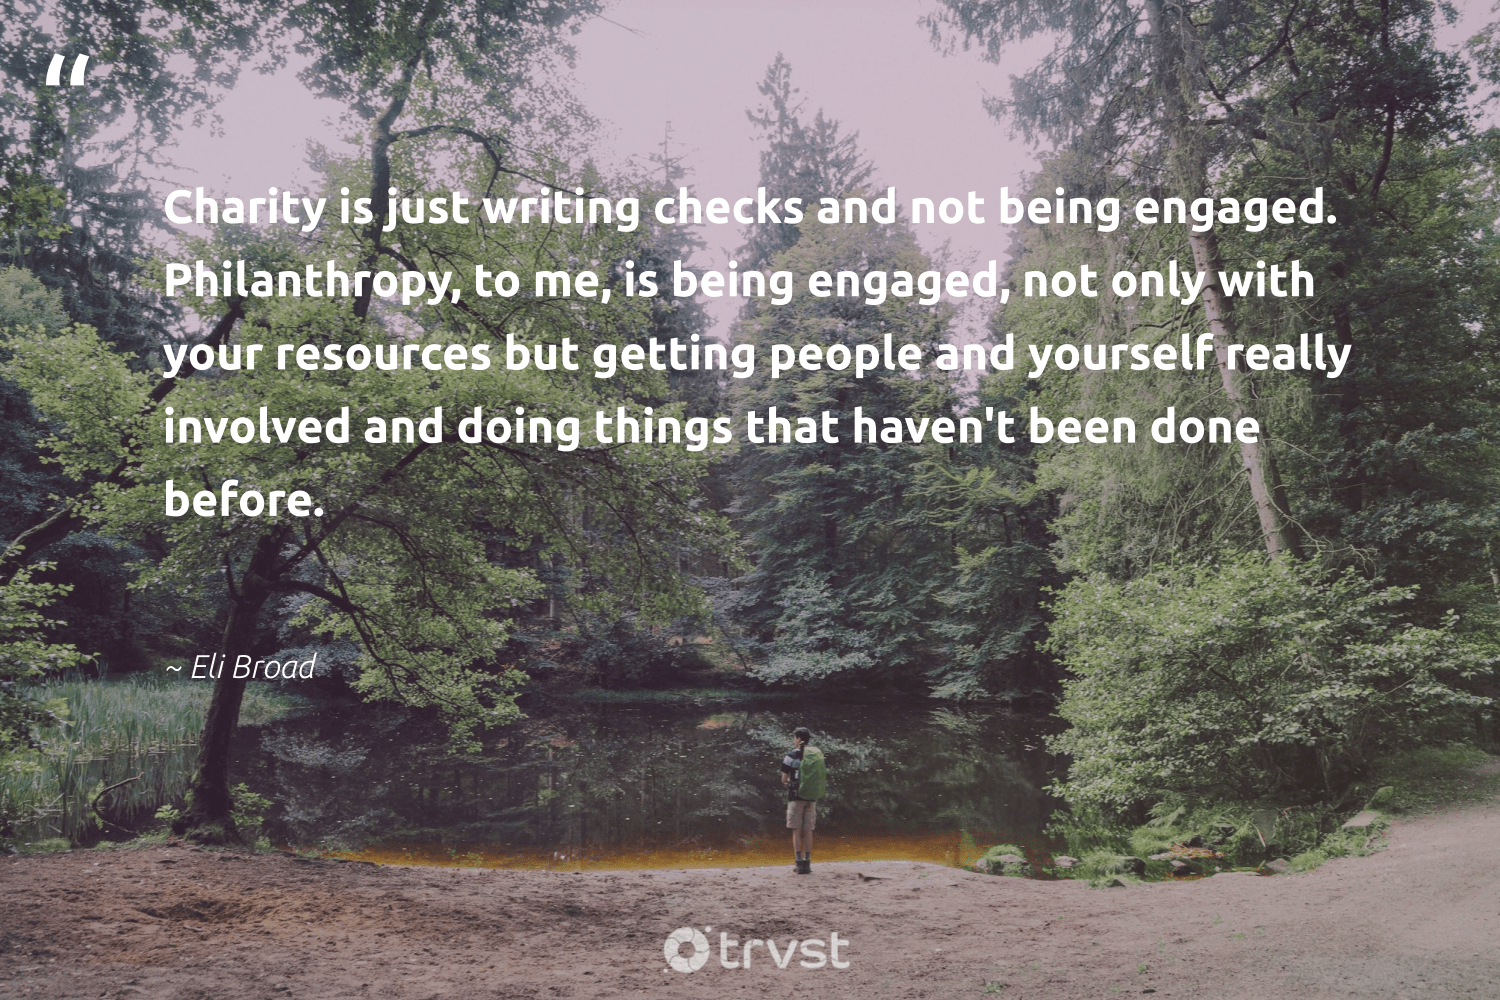 """Charity is just writing checks and not being engaged. Philanthropy, to me, is being engaged, not only with your resources but getting people and yourself really involved and doing things that haven't been done before.""  - Eli Broad #trvst #quotes #philanthropy #philanthropic #giveforthefuture #itscooltobekind #bethechange #togetherwecan #changemakers #socialimpact #socialchange #thinkgreen"